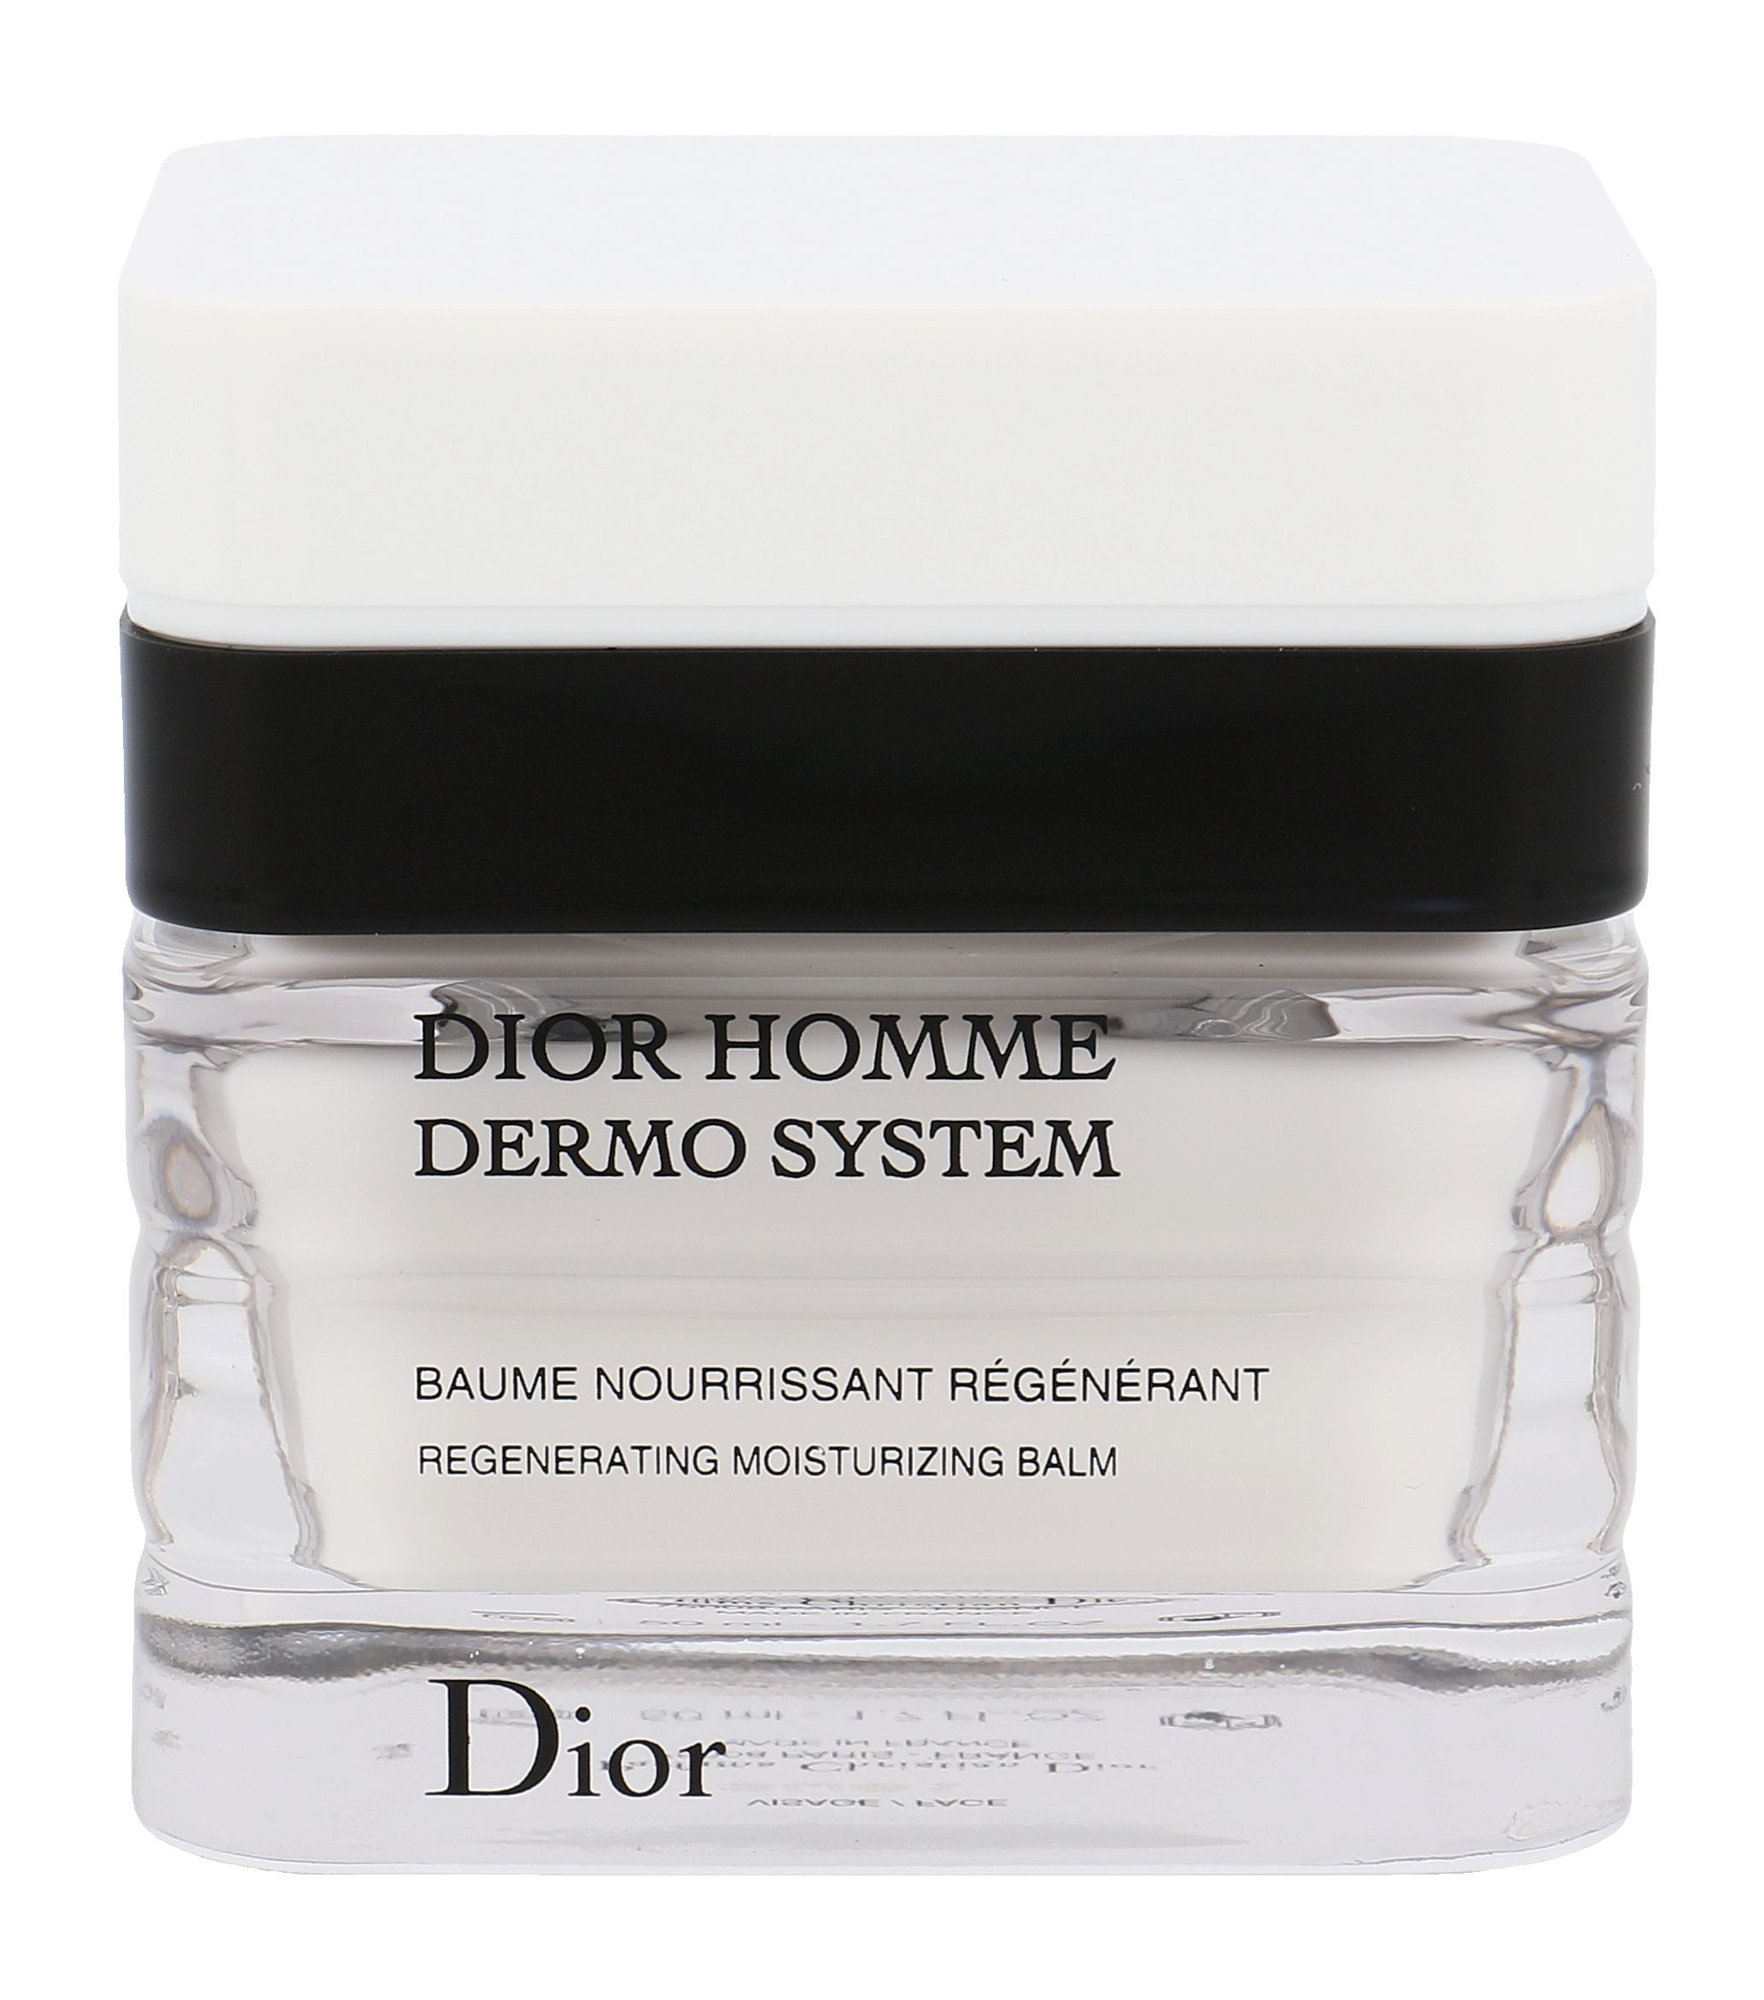 Christian Dior Homme Dermo System Cosmetic 50ml